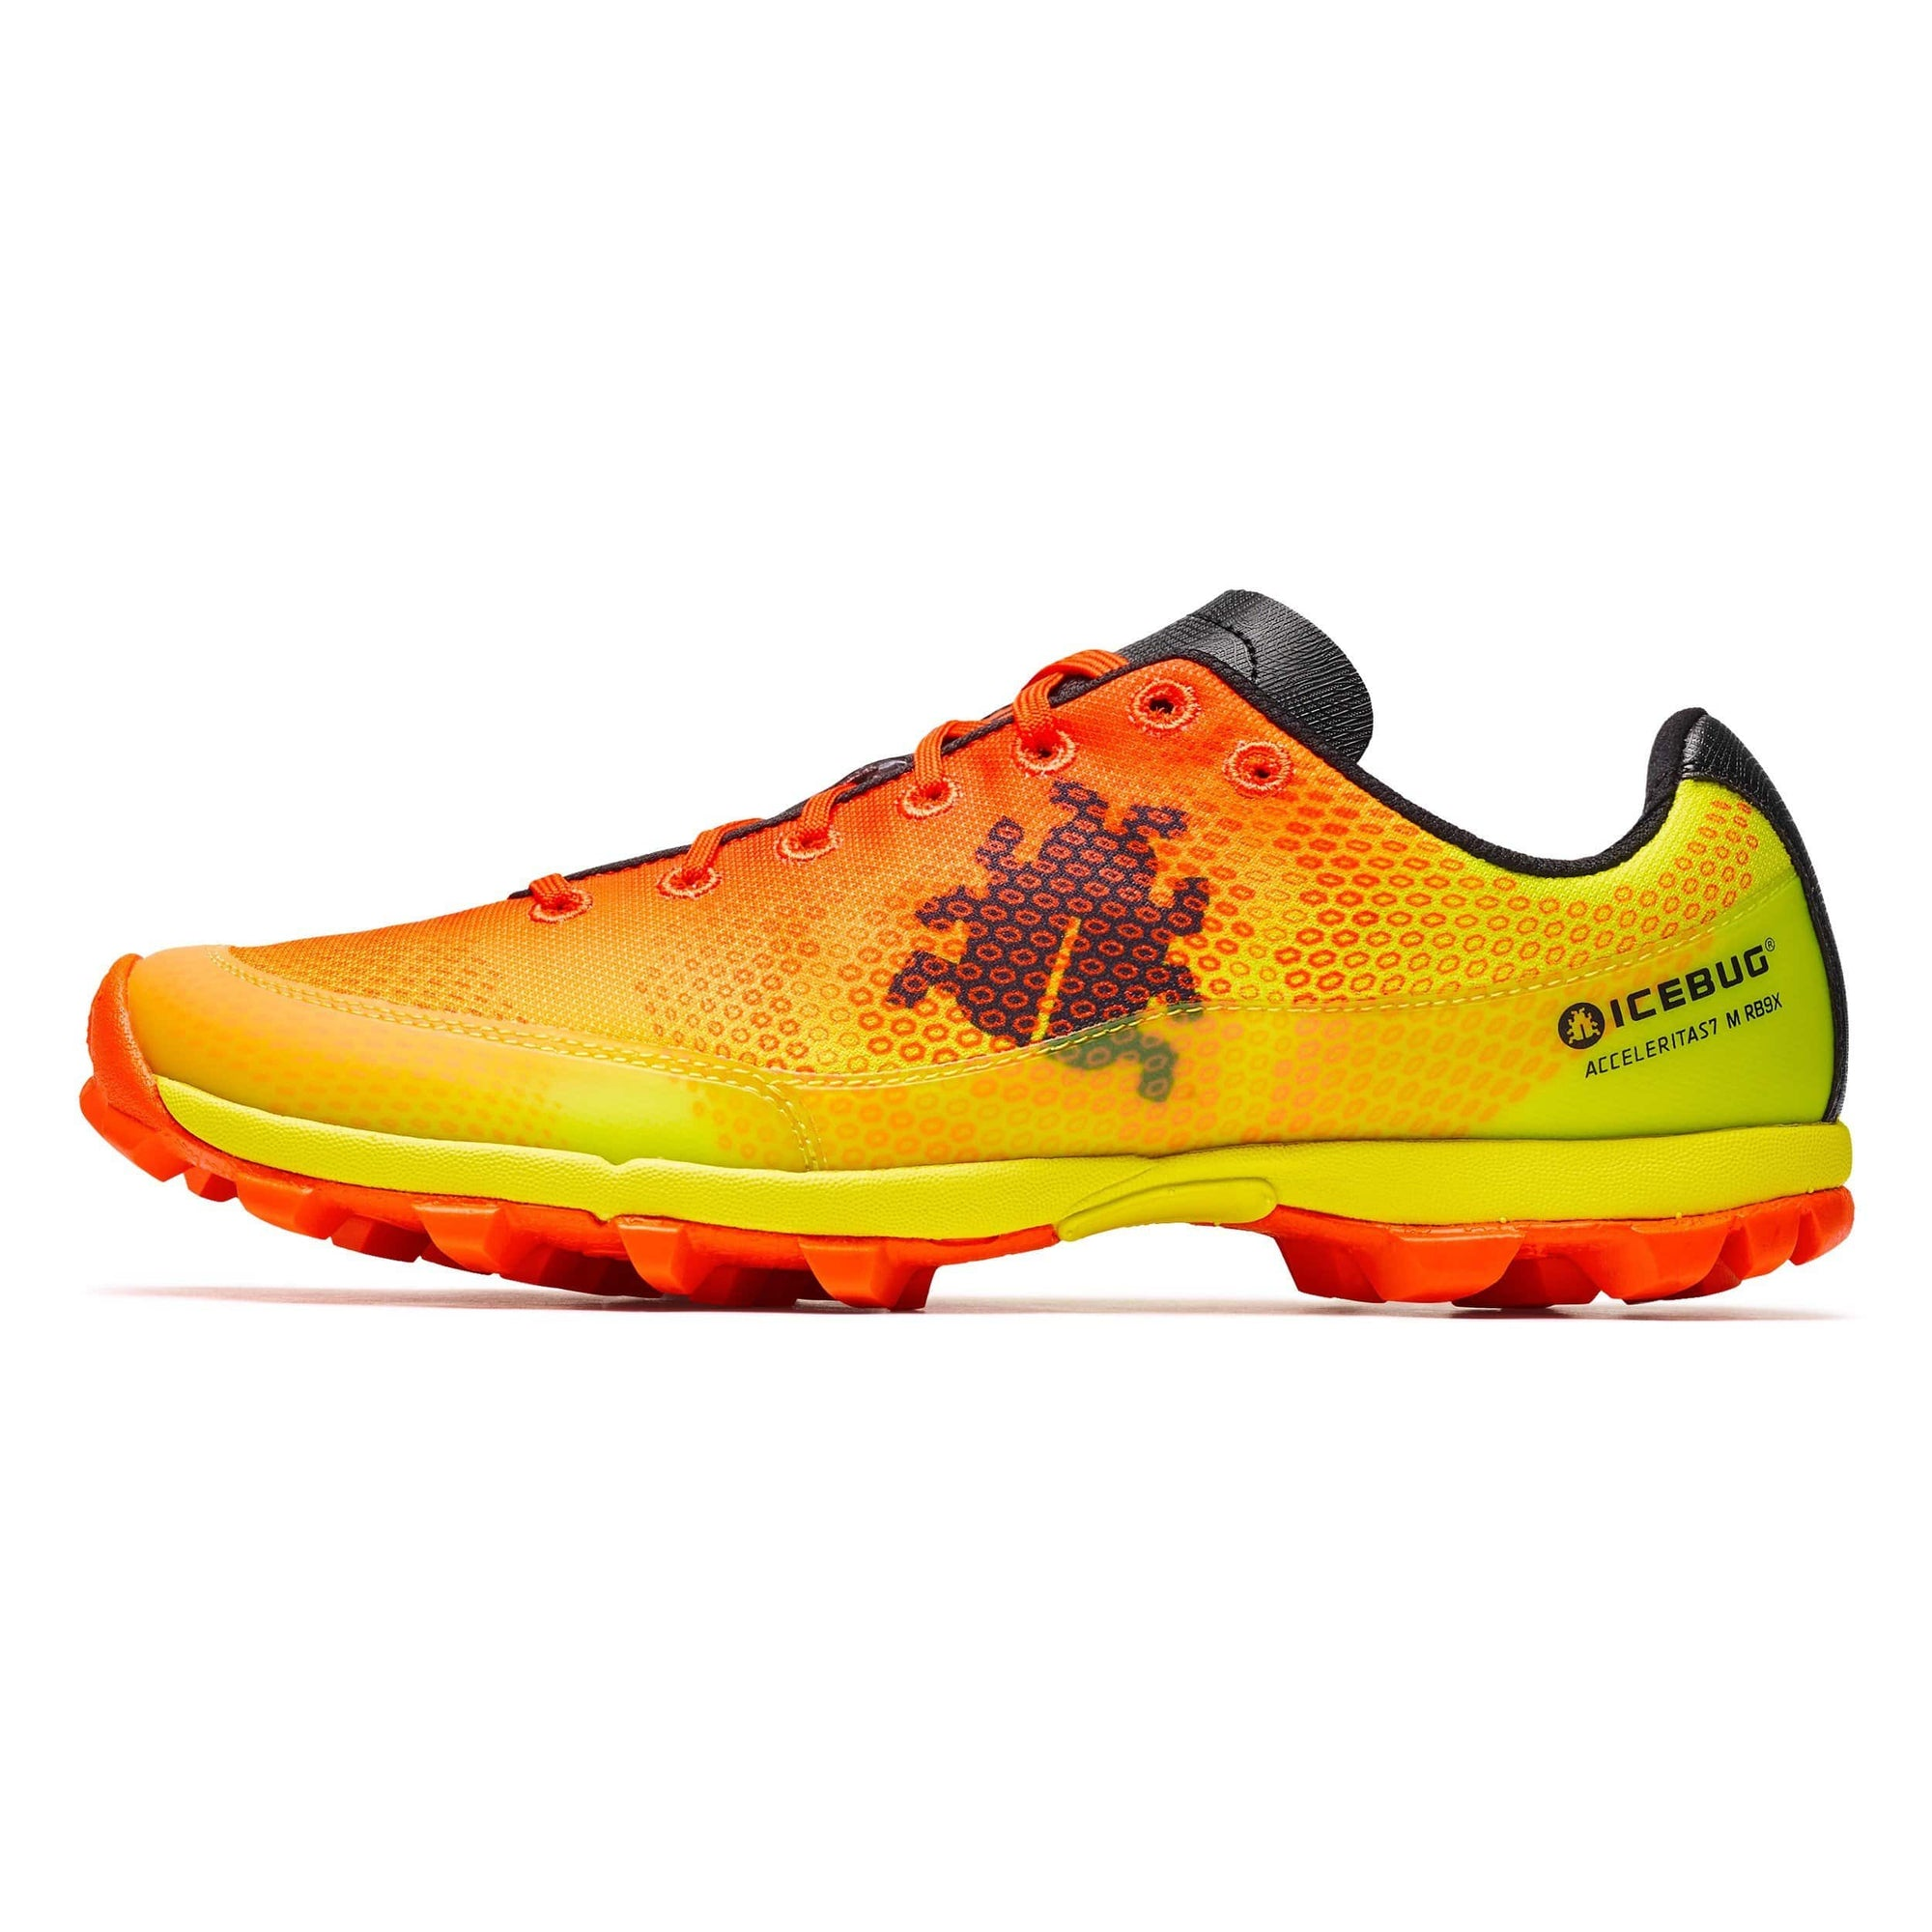 Acceleritas7 Men's RB9X